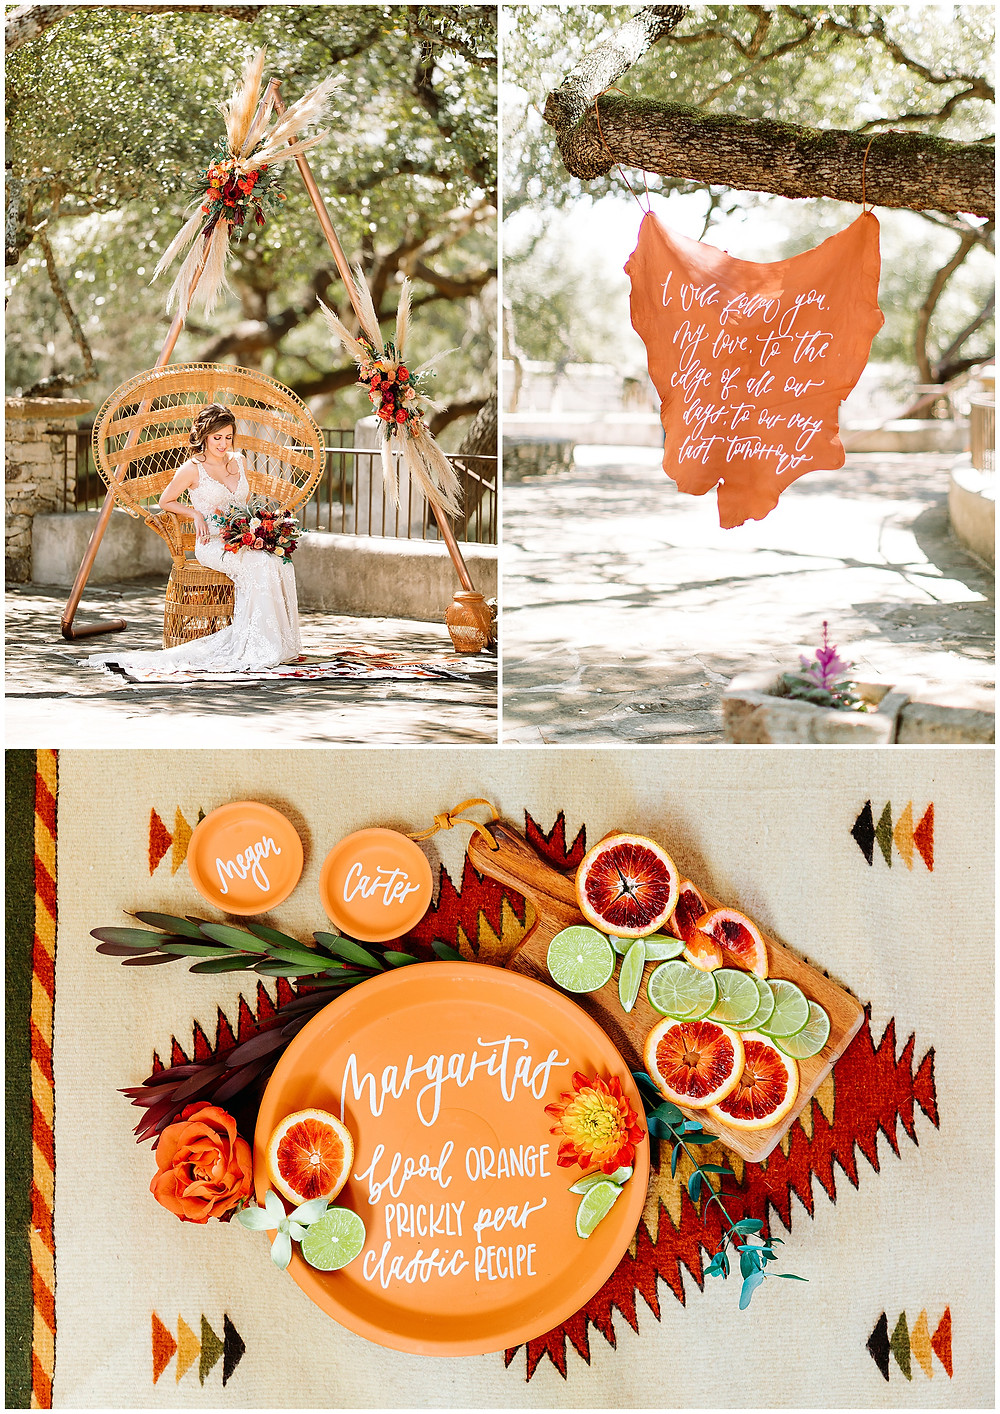 snap chic photography, southwest styled shoot, Texas hill country wedding photographer, Boerne Texas weddings, flat lay photo